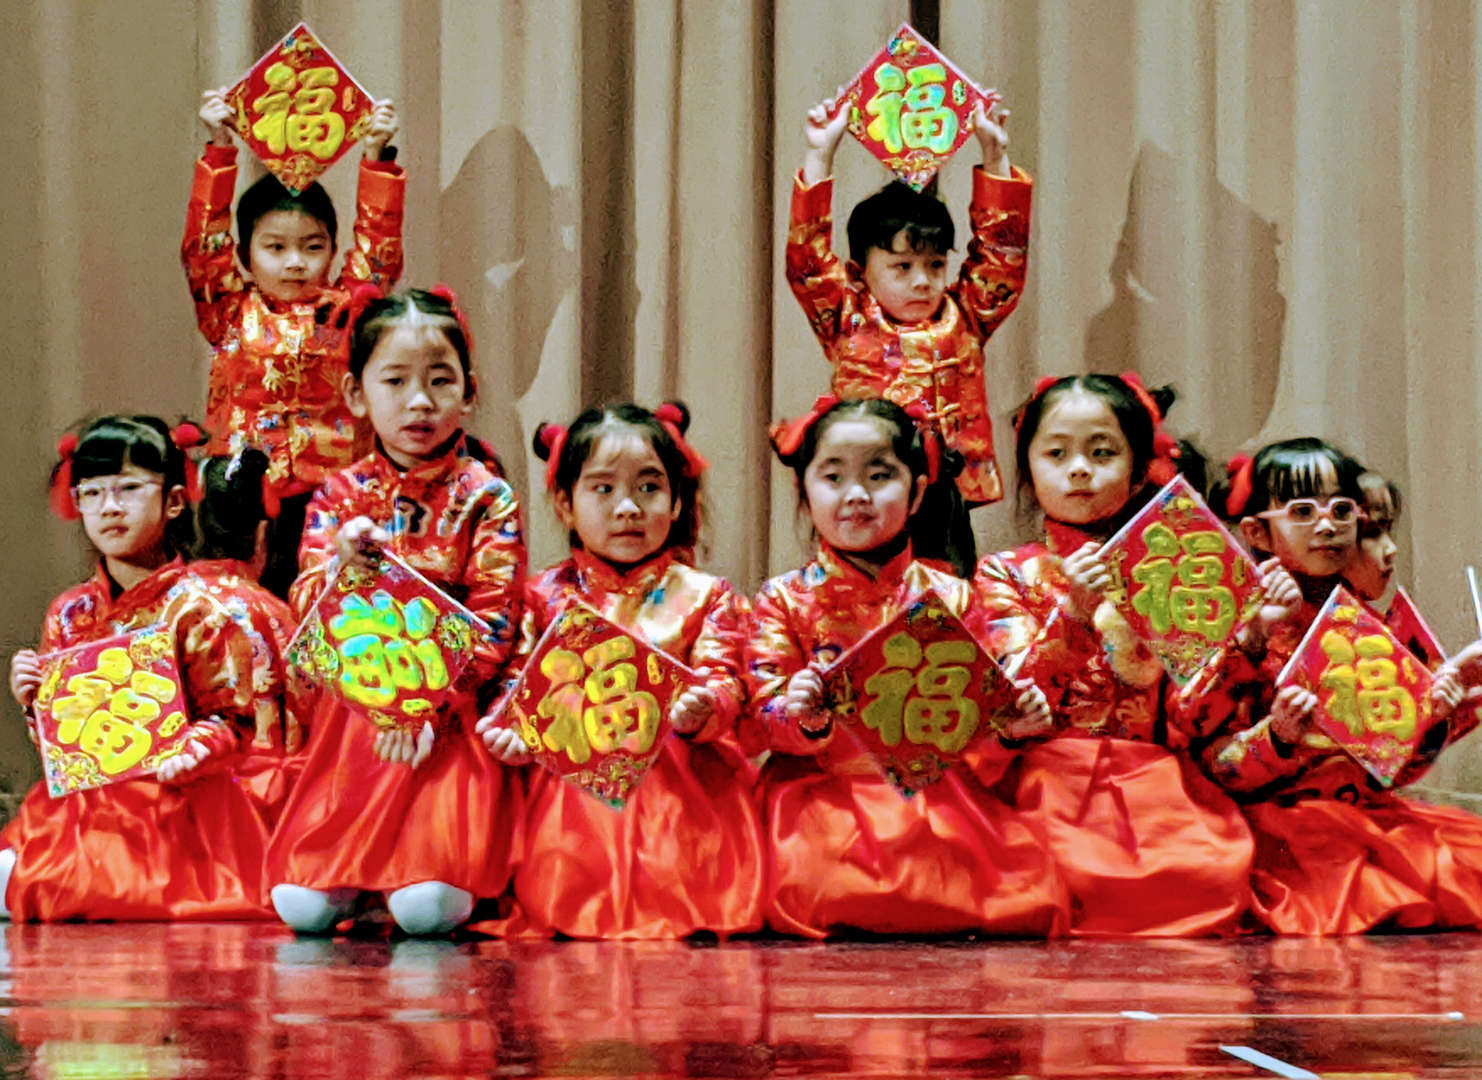 Ms. Kwan's class performs the good fortune dance.